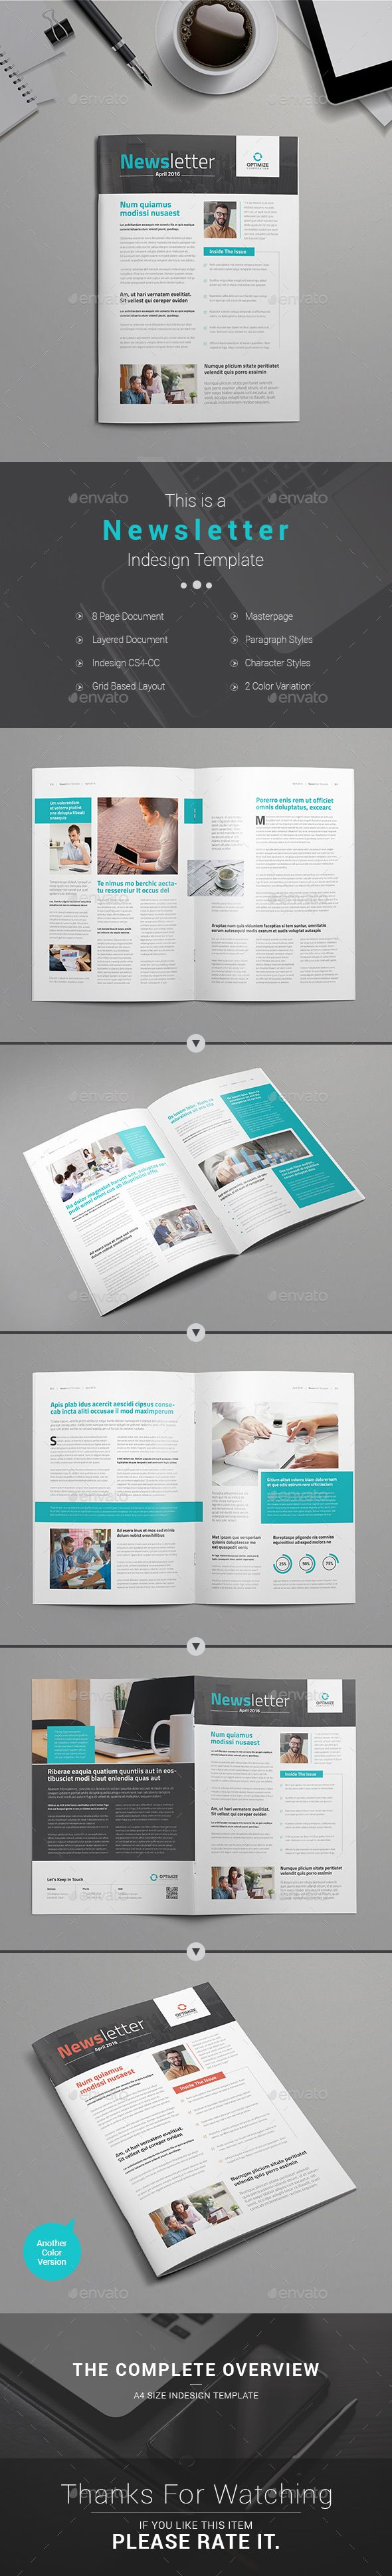 Newsletter Template | Newsletter templates, Template and Print templates